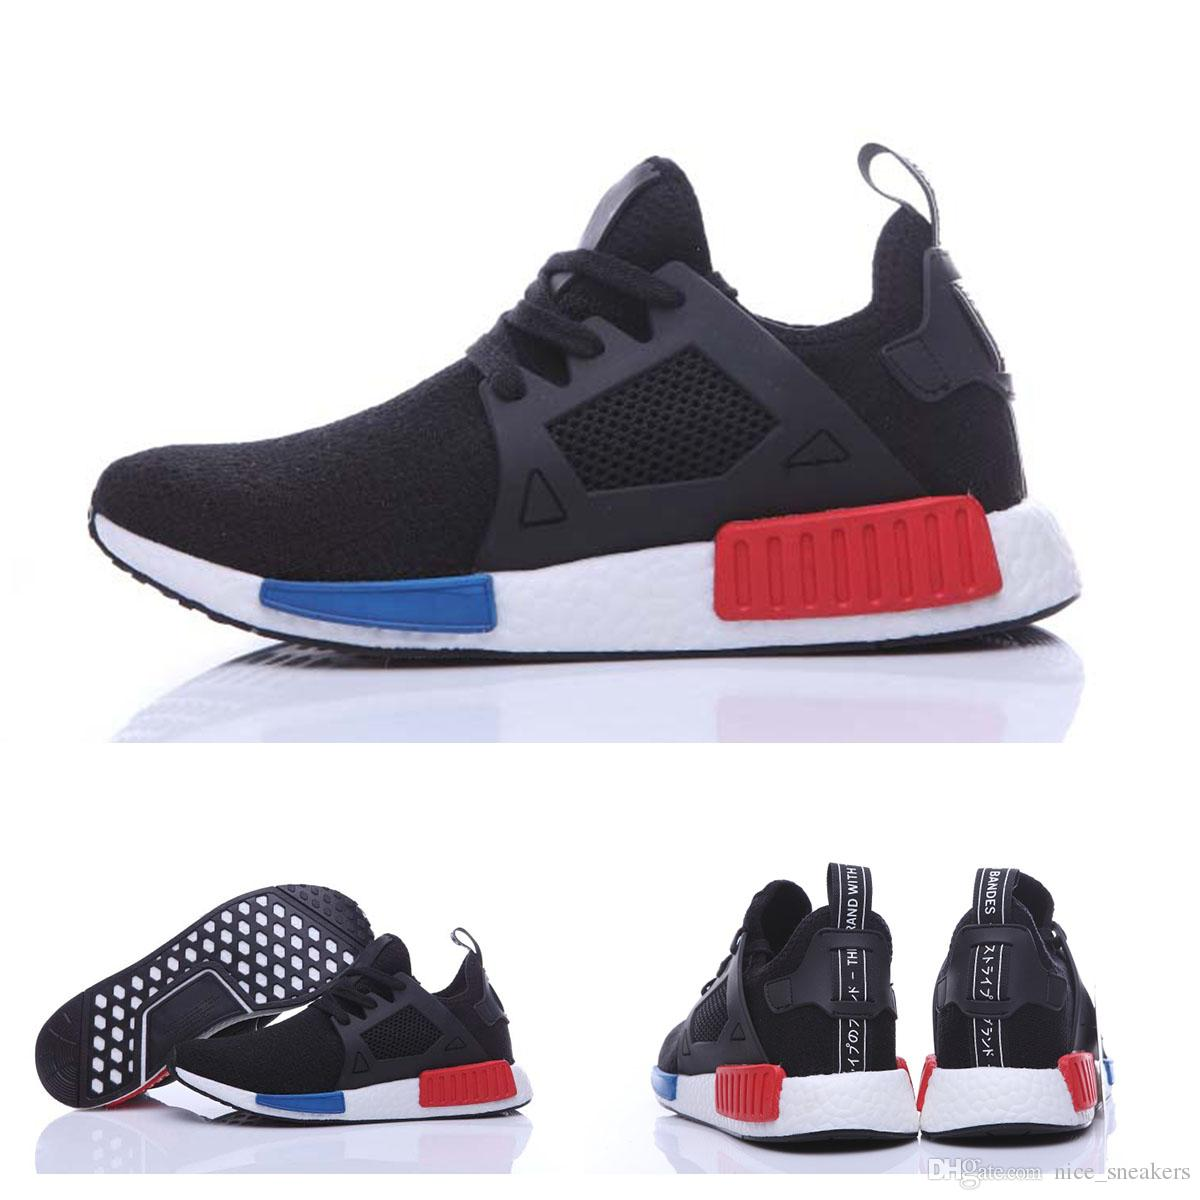 517a02f56 Adidas NMD XR1 BA7231 PK Black Camo Men s Originals  75.00